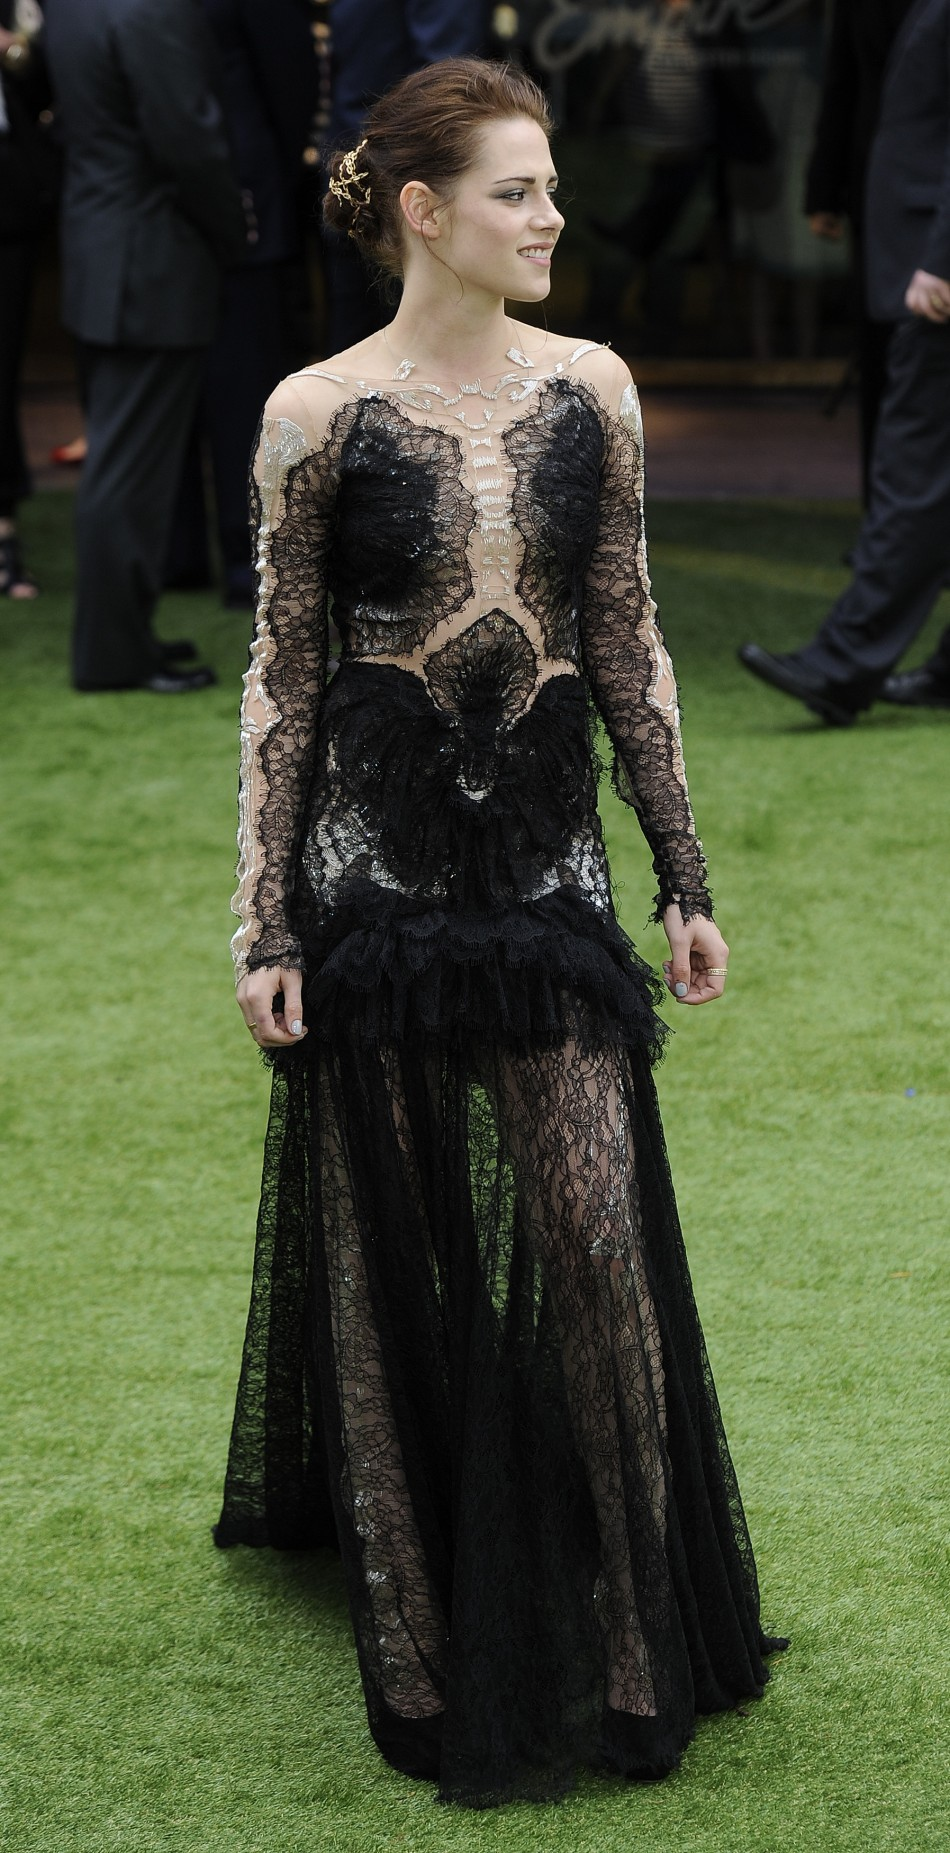 """Actress Kristen Stewart poses for photographers as she arrives for the world premiere of """"Snow White and the Huntsman"""" at Leicester Square in London"""